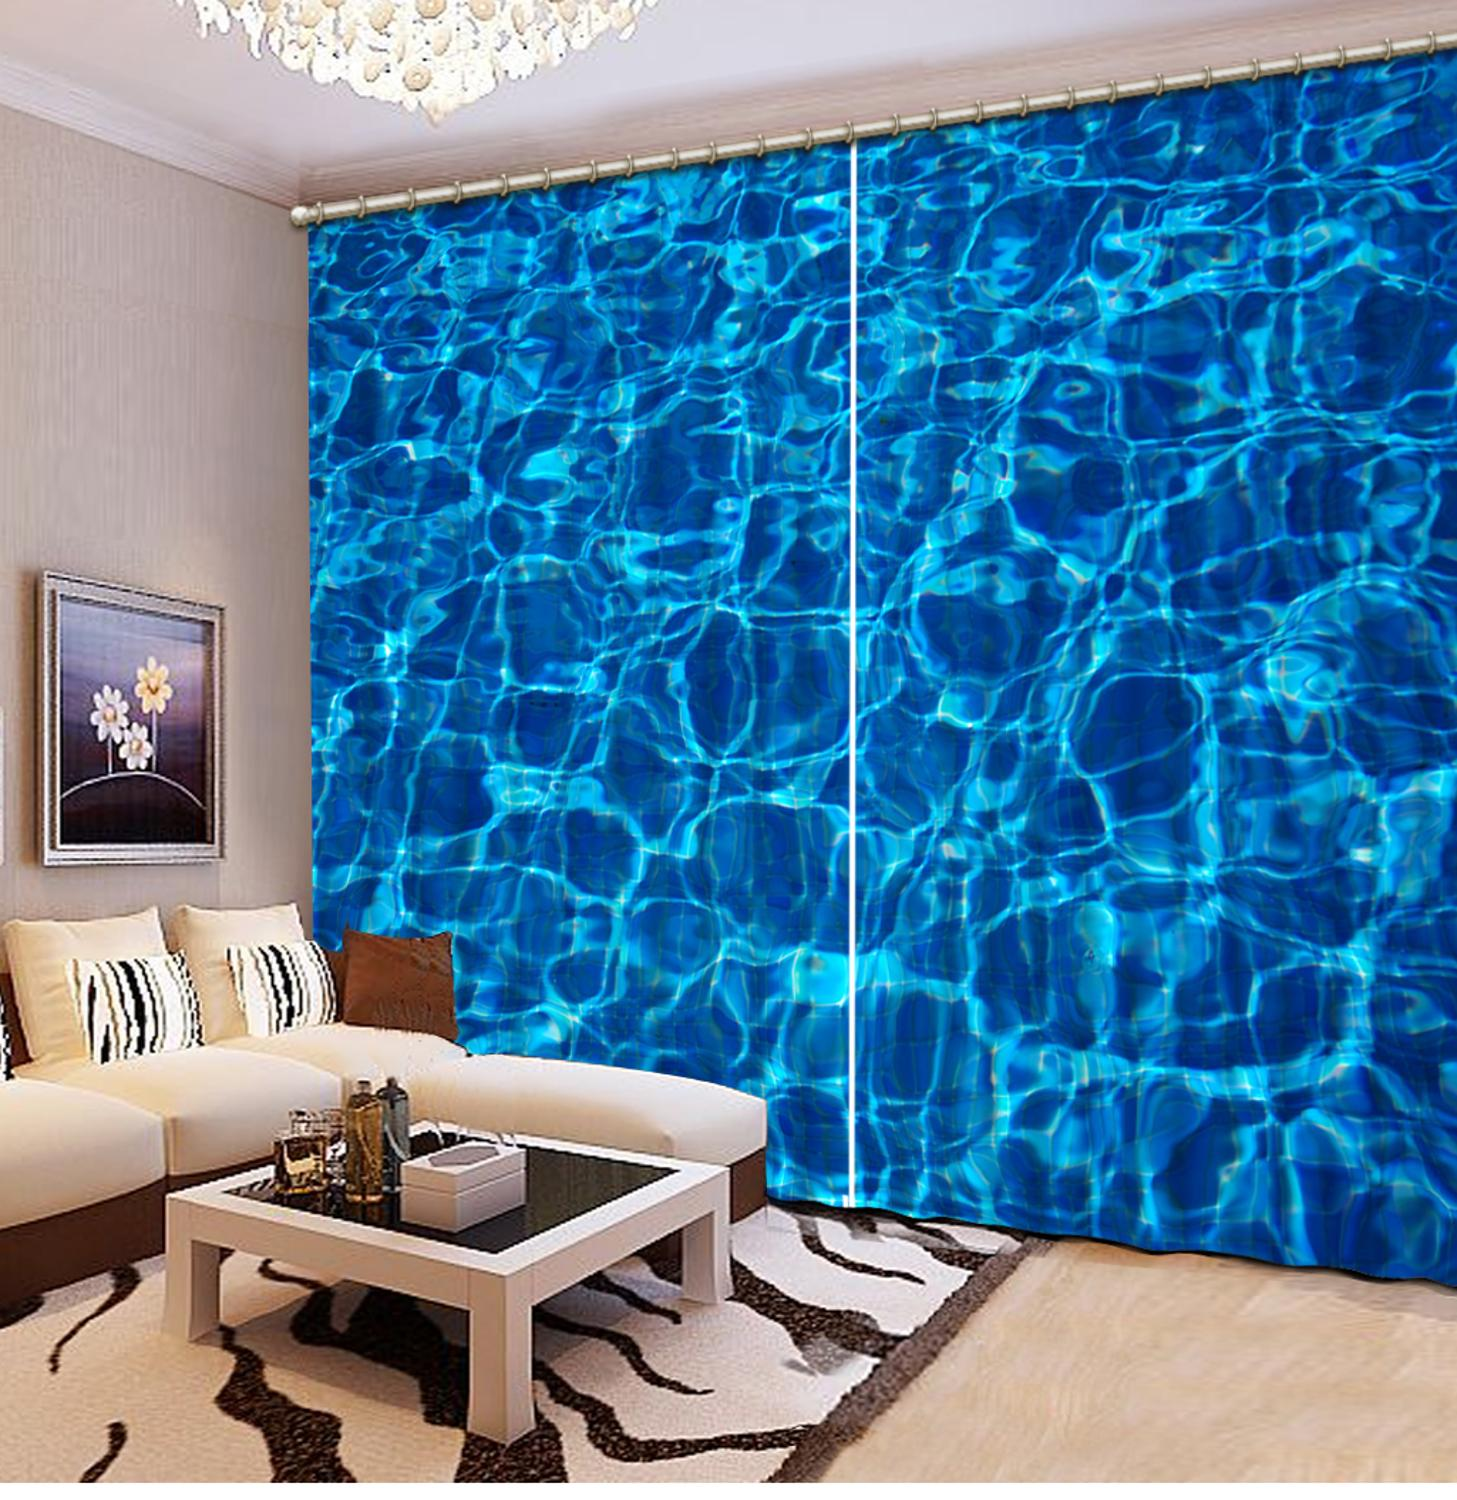 Customized size Luxury Blackout 3D Window Curtains For Living Room wave curtains blue curtainCustomized size Luxury Blackout 3D Window Curtains For Living Room wave curtains blue curtain